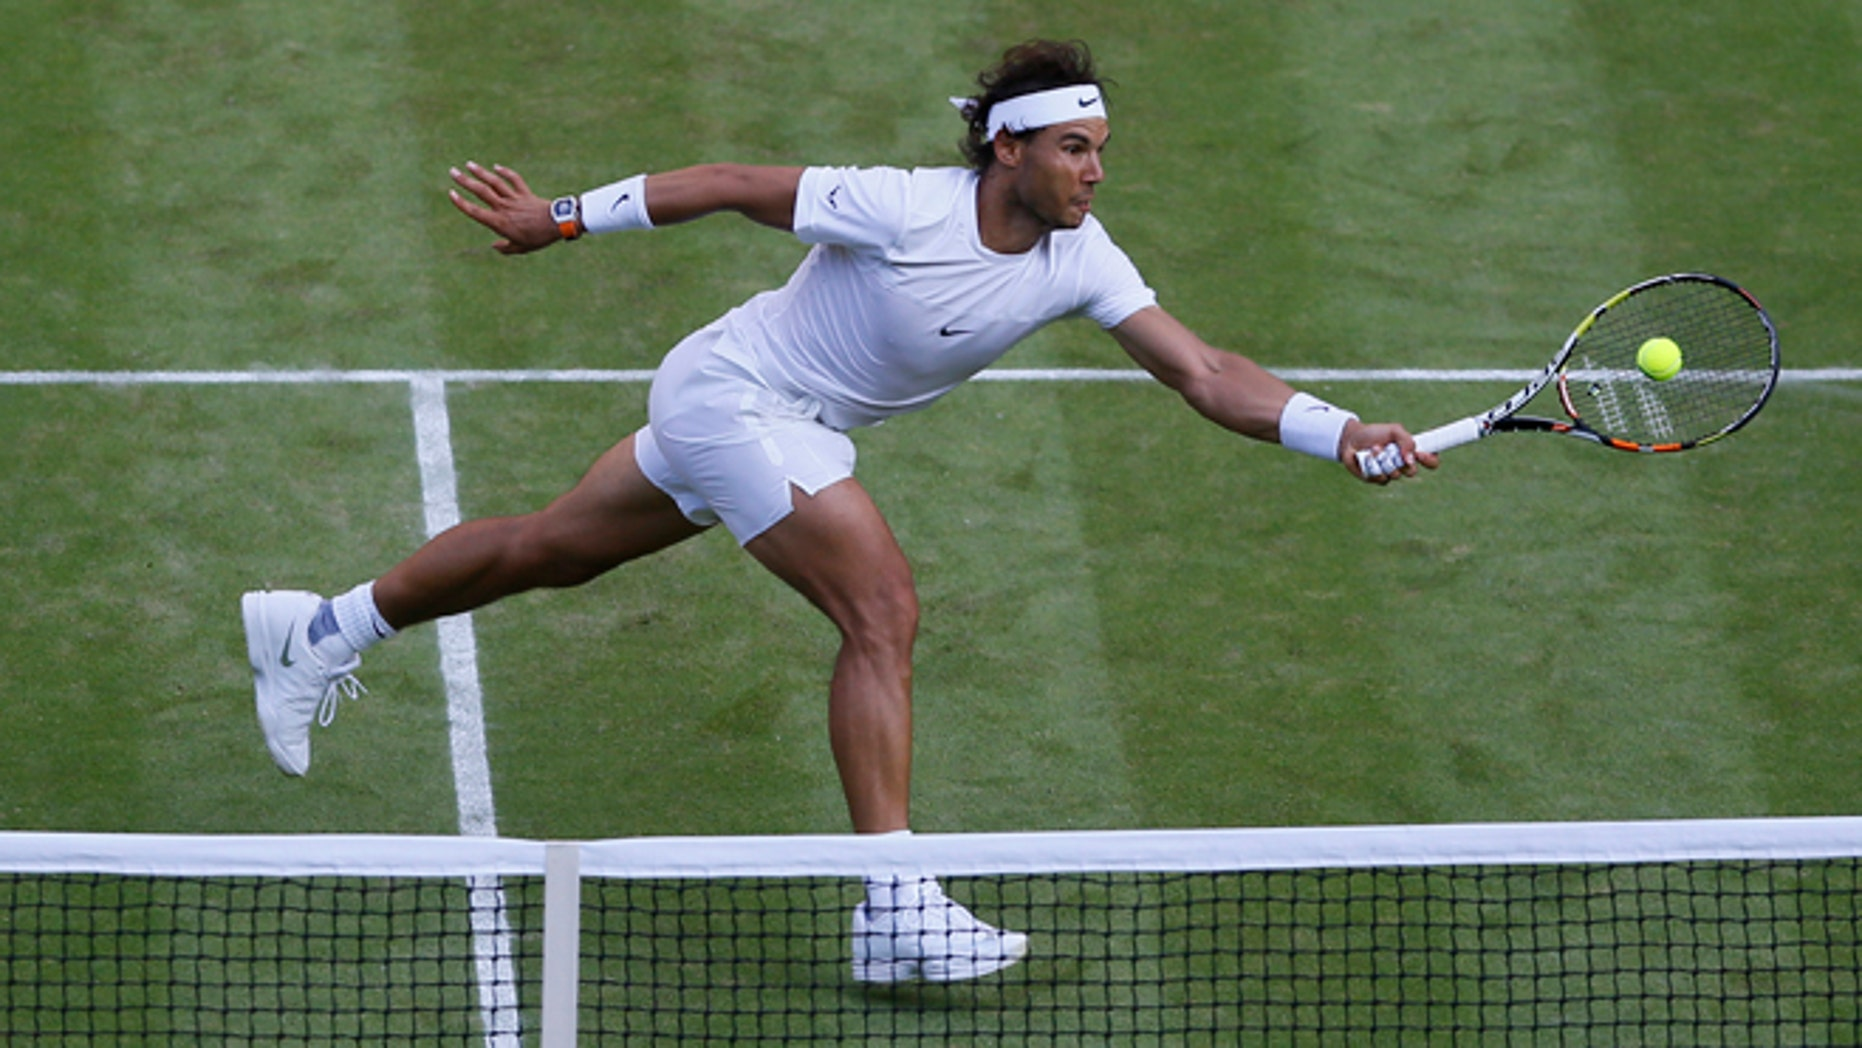 Rafael Nadal of Spain returns a ball to Dustin Brown of Germany, during their singles match at the All England Lawn Tennis Championships in Wimbledon, London, Thursday July 2, 2015. (AP Photo/Kirsty Wigglesworth)